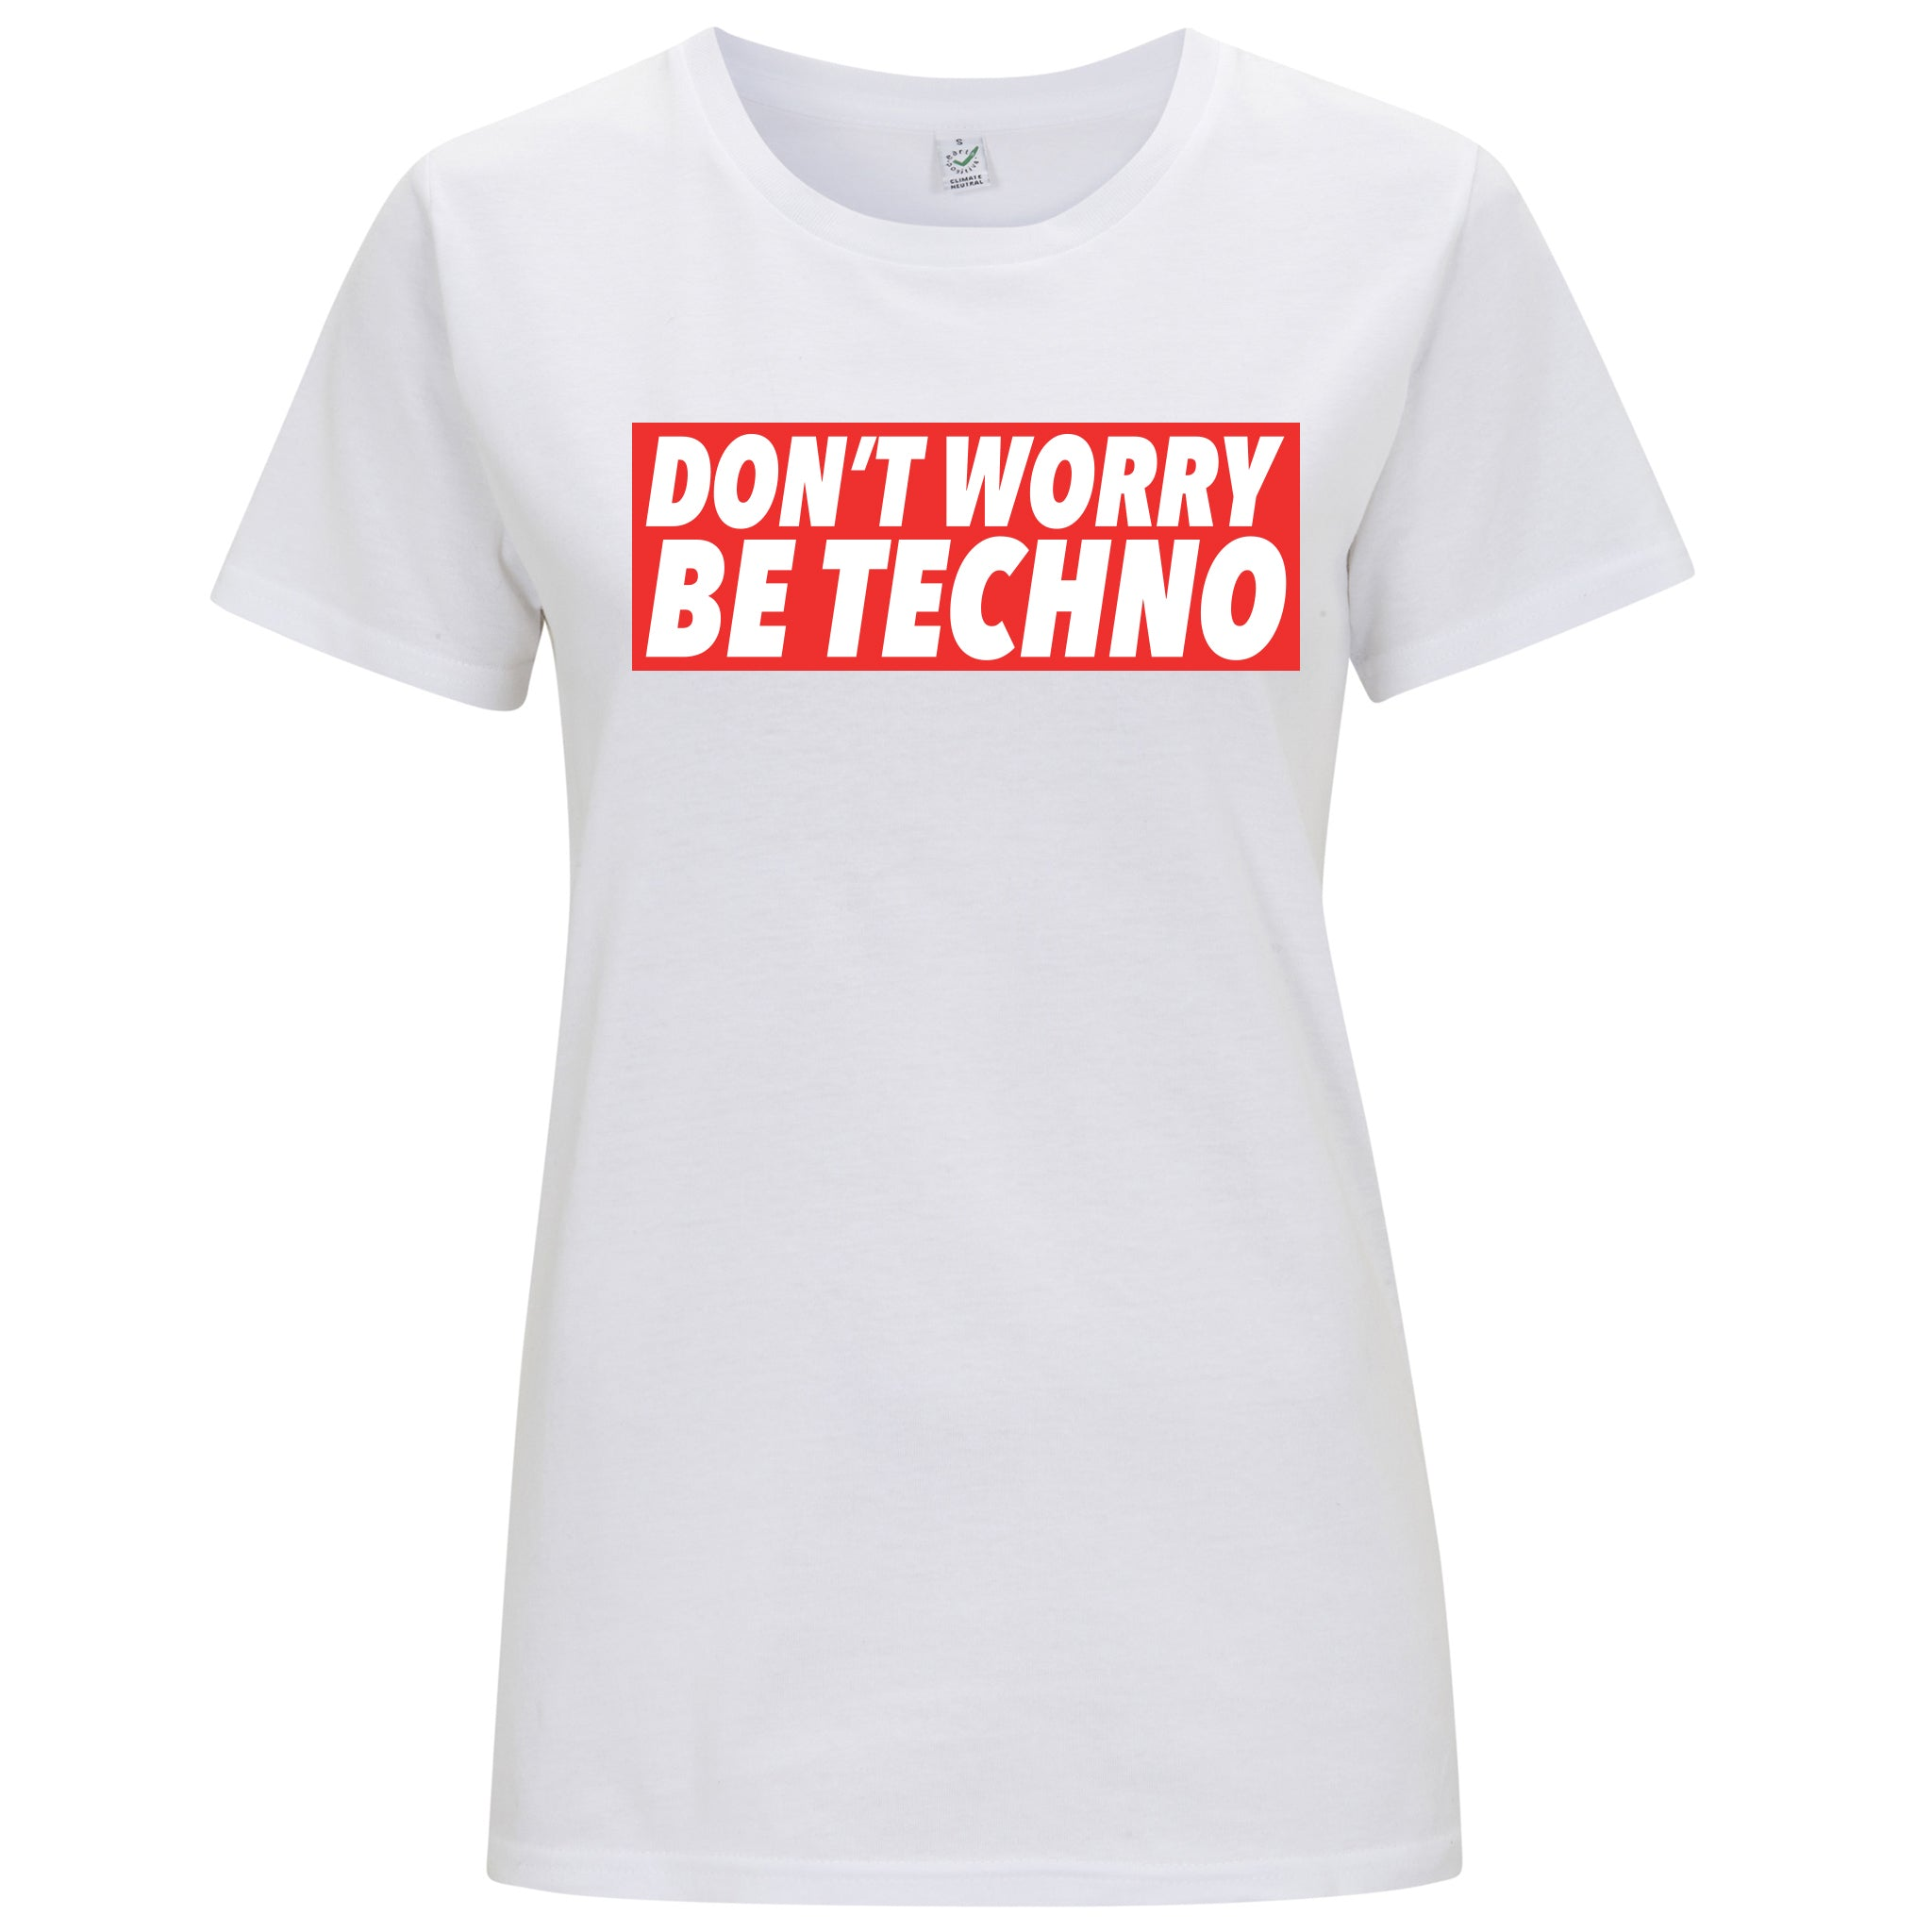 Don't Worry, Be Techno - T-shirt Donna - T-Shirt by Fol The Brand